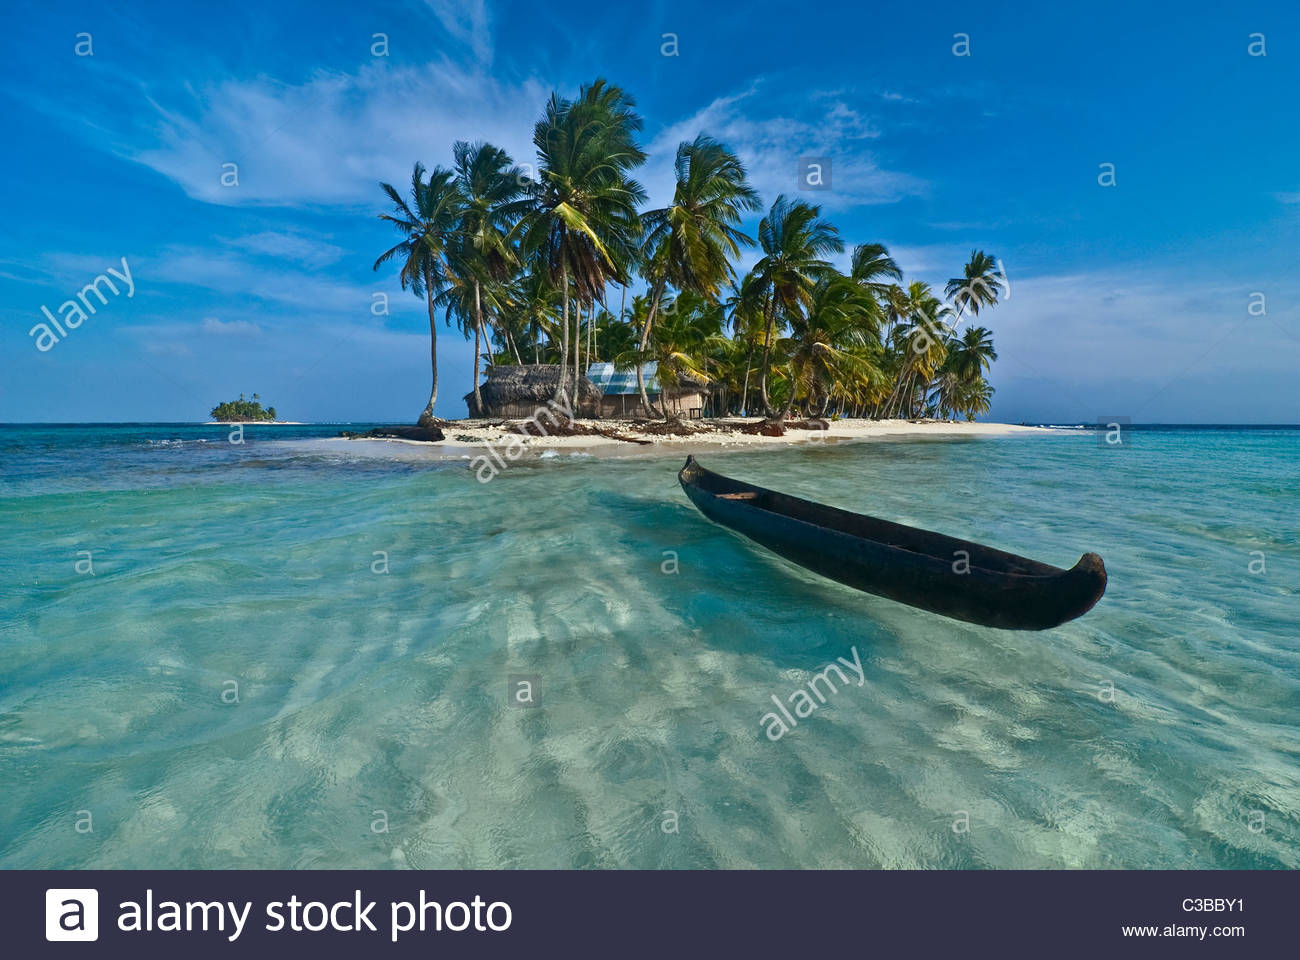 Tropical islands in the Caribbean - Stock Image